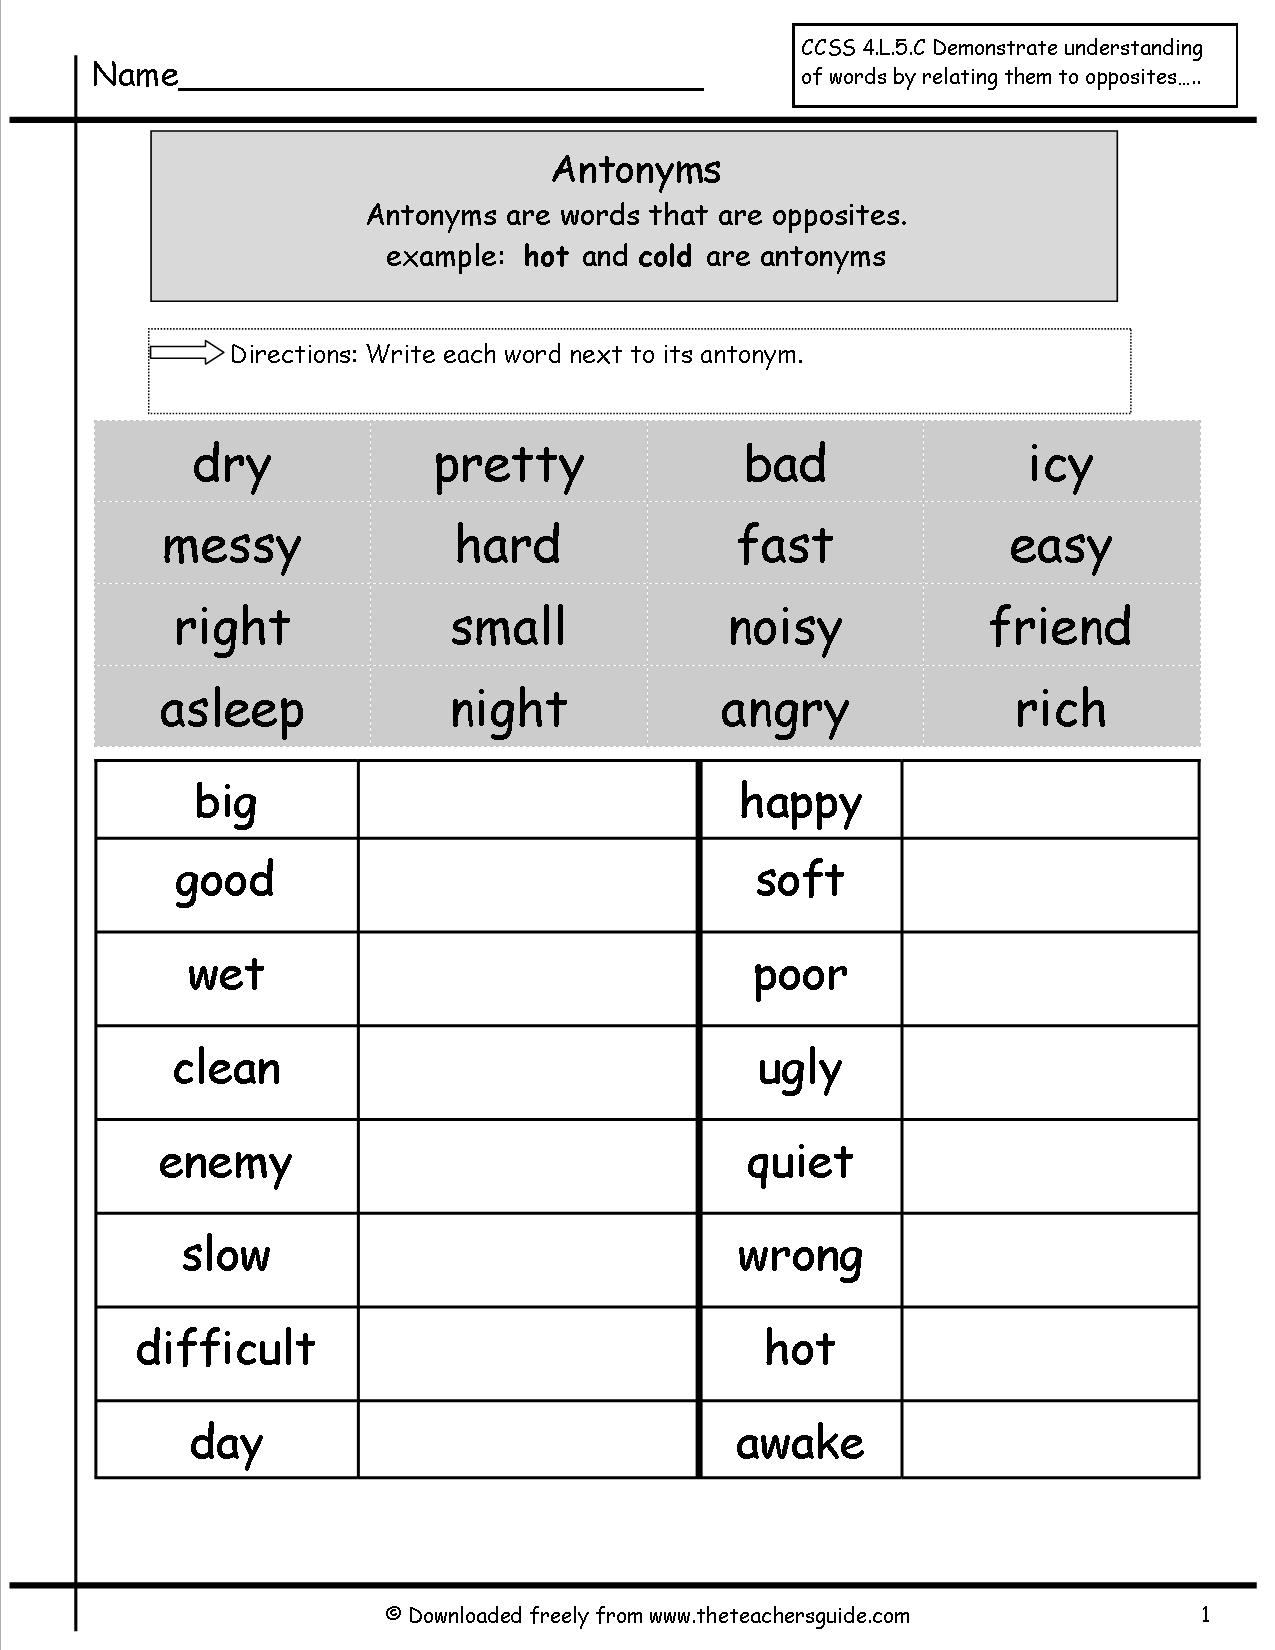 Antonyms And Synonyms Worksheets From The Teacher's Guide | Antonyms Printable Worksheets